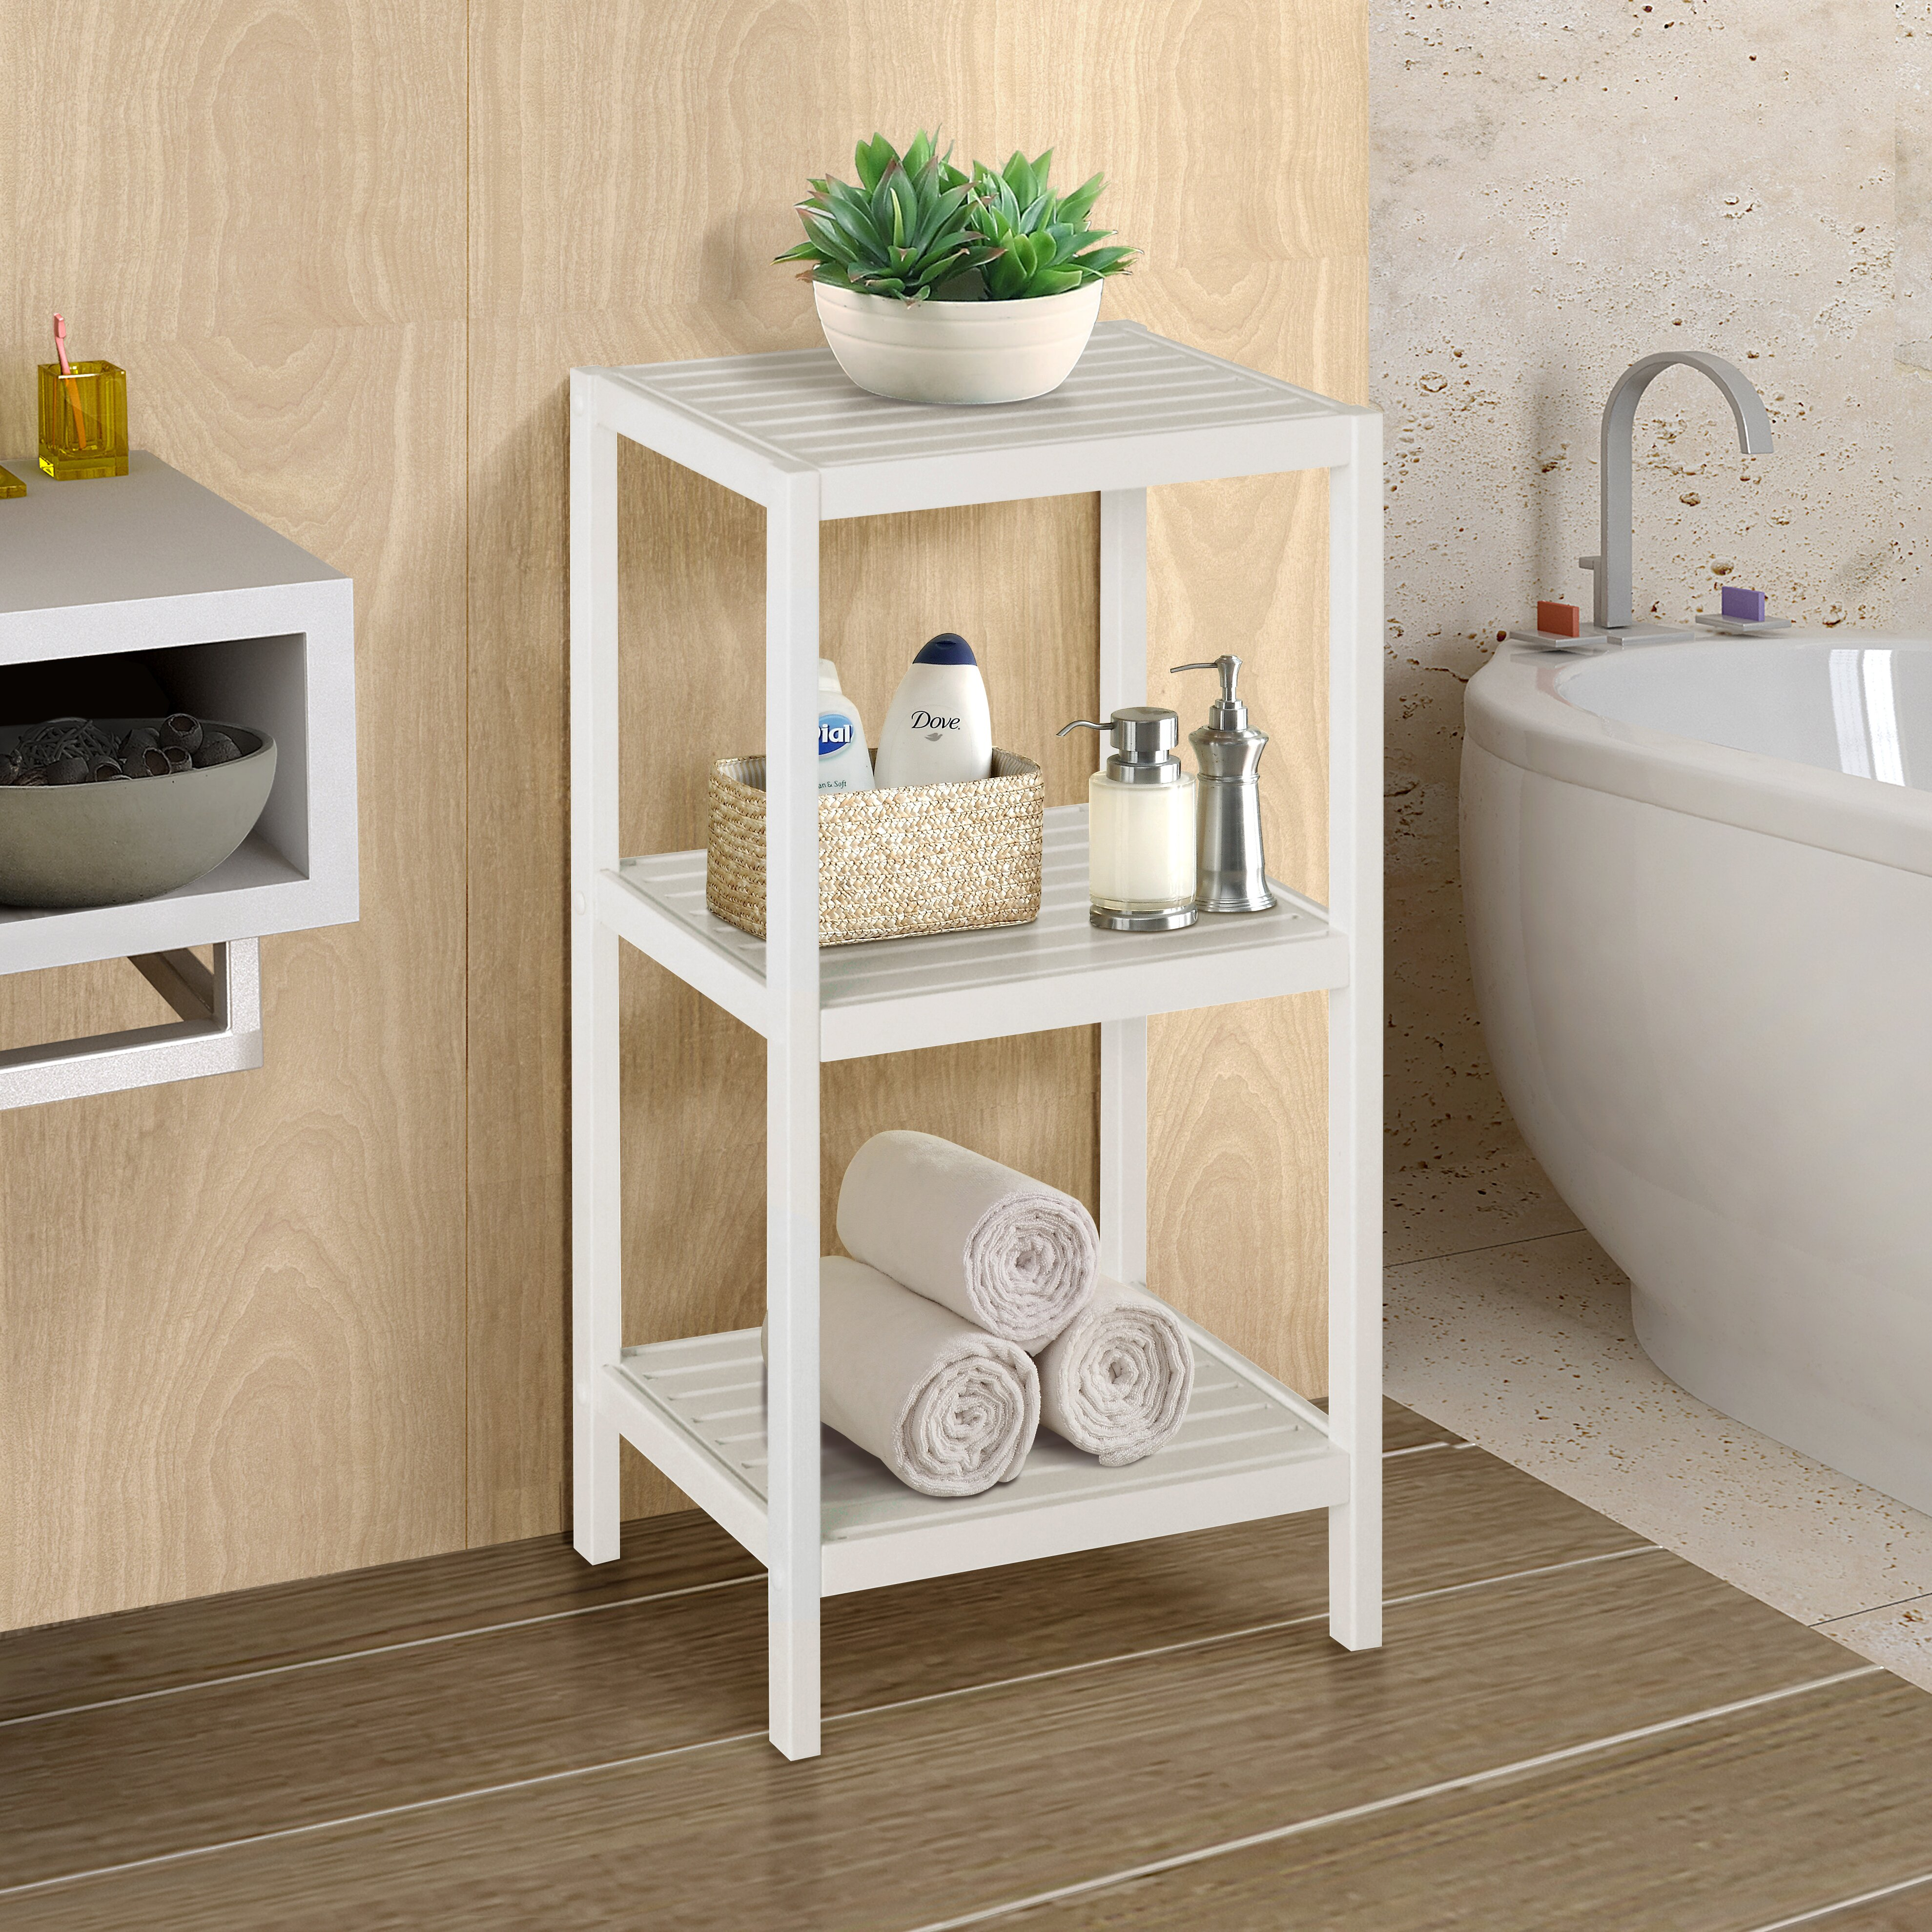 Bathroom Shelf Gallerie Decor Spa 145 W X 285 H Bathroom Shelf Reviews